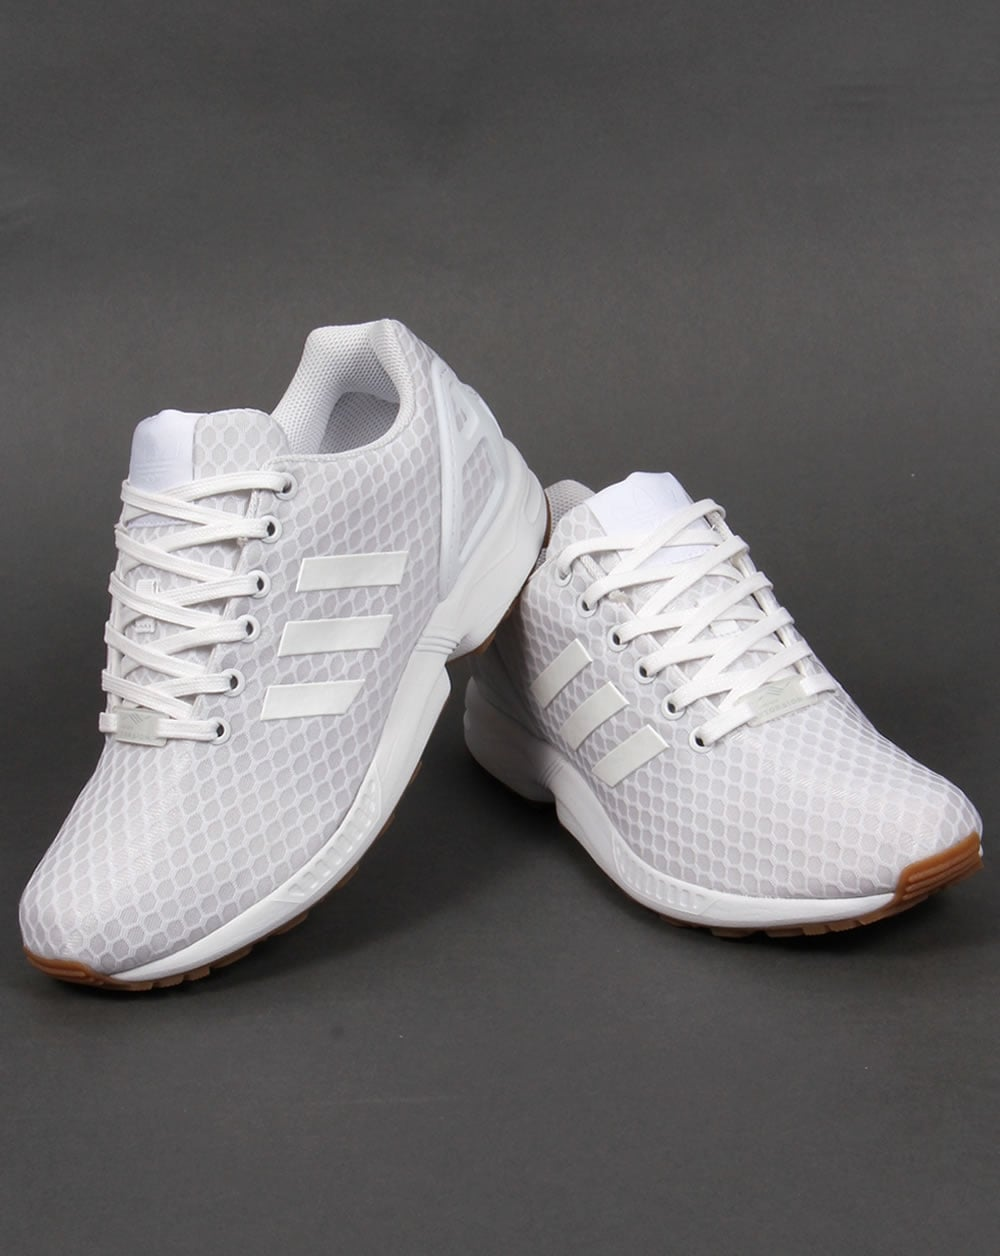 timeless design 3fb35 d0f13 Adidas ZX Flux Trainers White/White/Gum